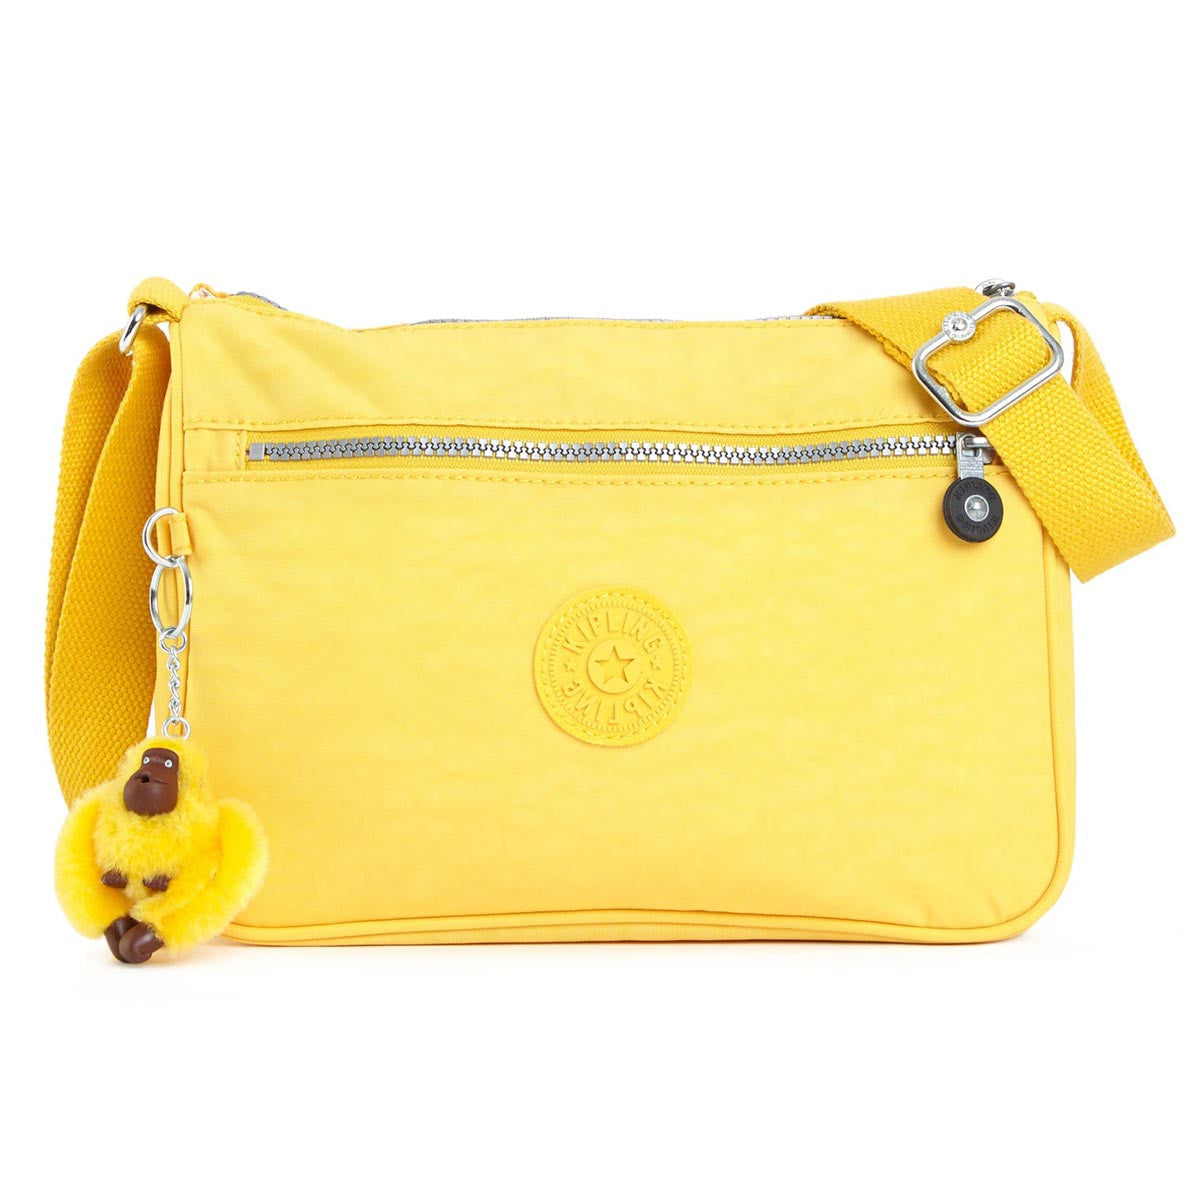 Kipling HB6490-708 Women's Callie Canary Nylon Crossbody Handbag